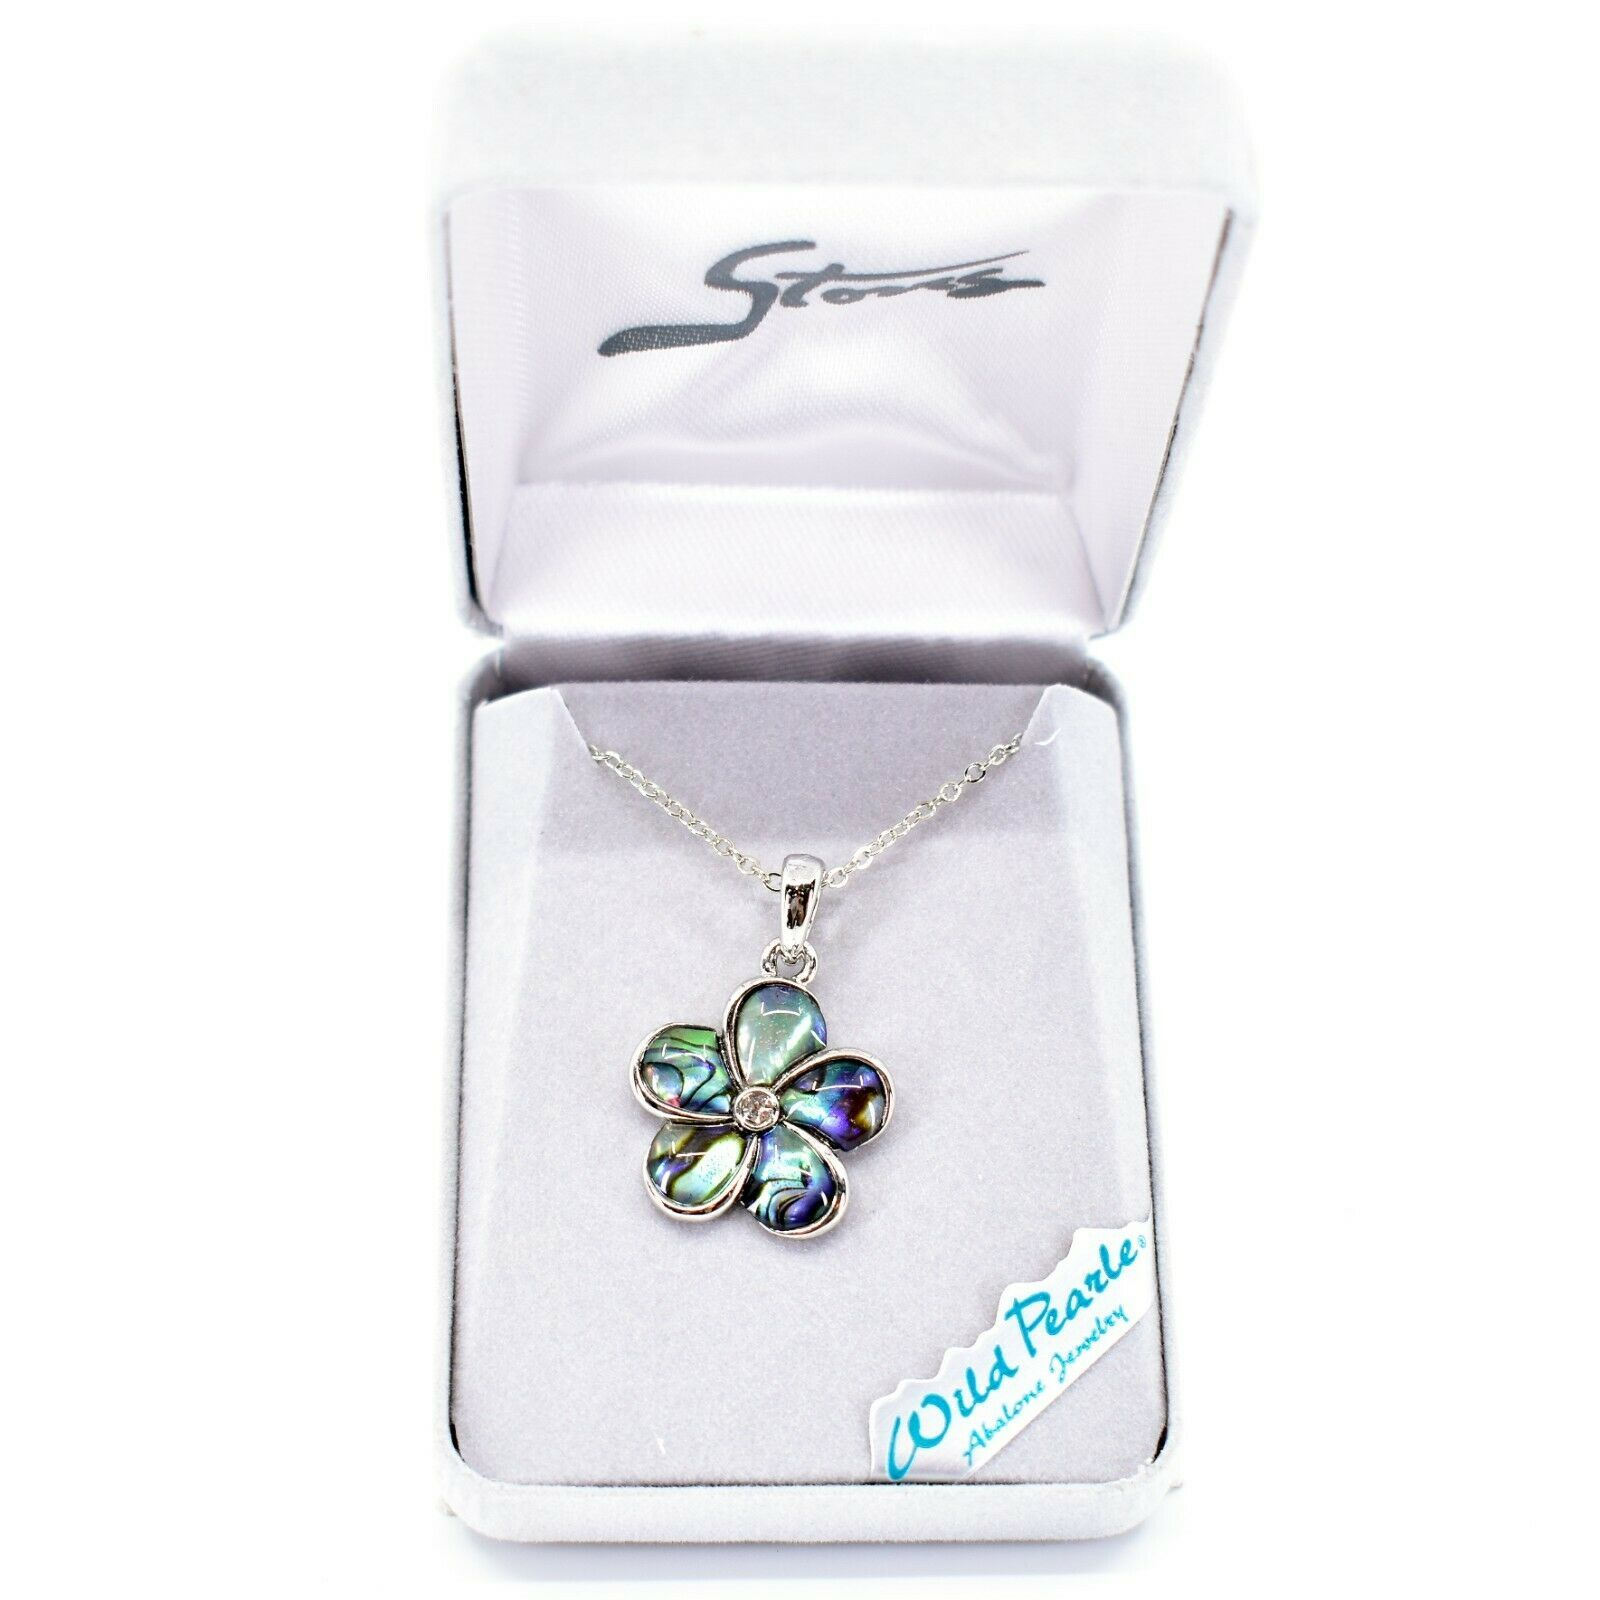 Storrs Wild Pearle Abalone Shell Forget Me Not Flower Pendant w Necklace